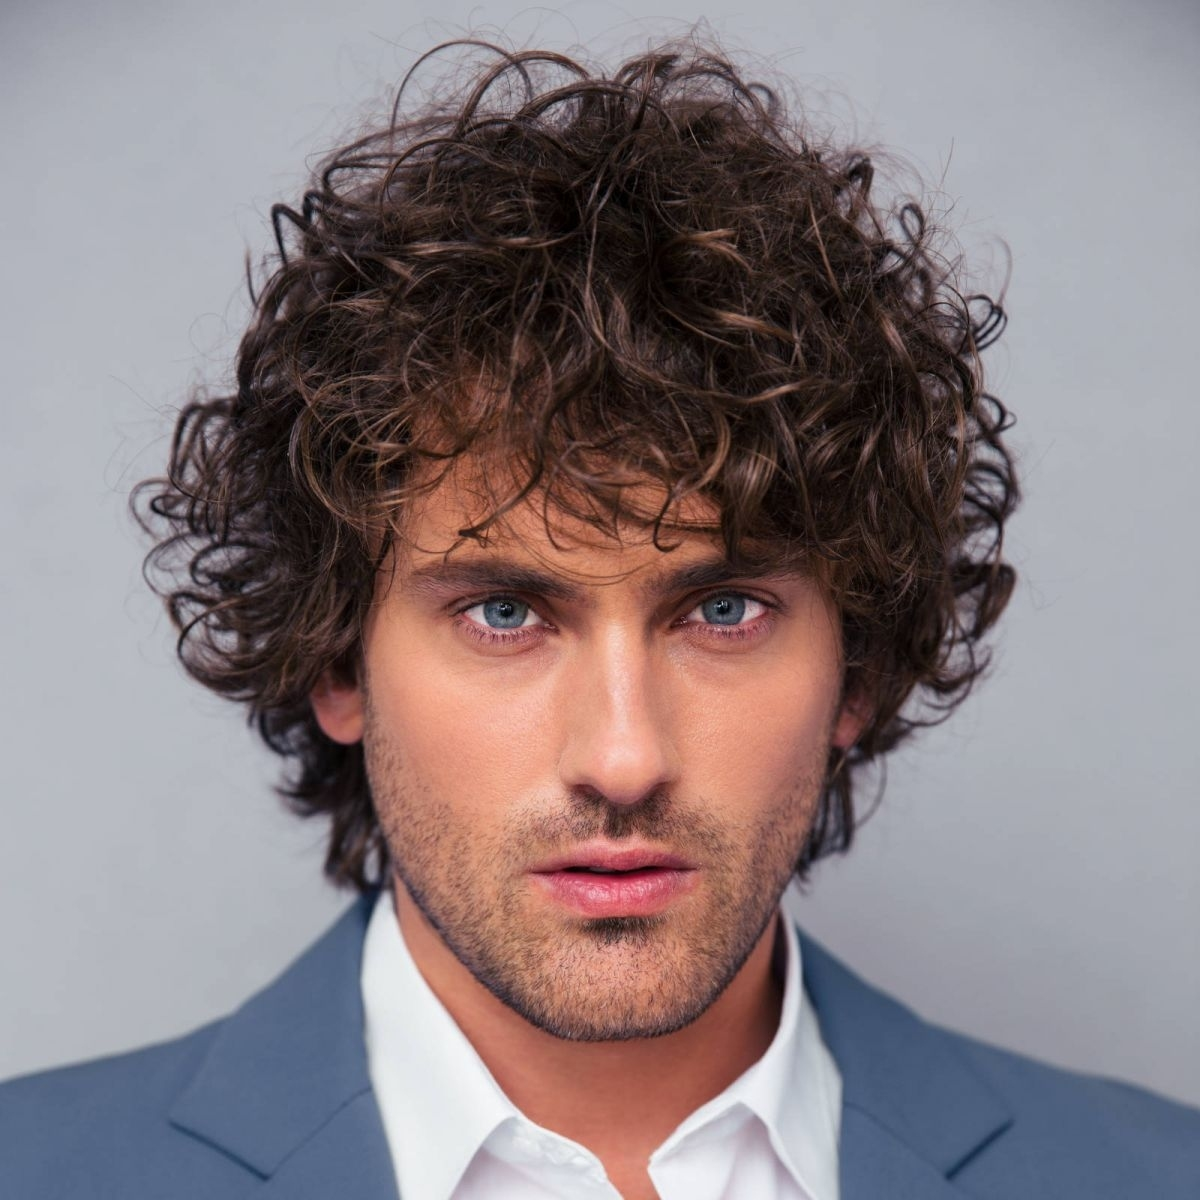 Best Haircut For Curly Hair Male Round Face Lajoshrich Com